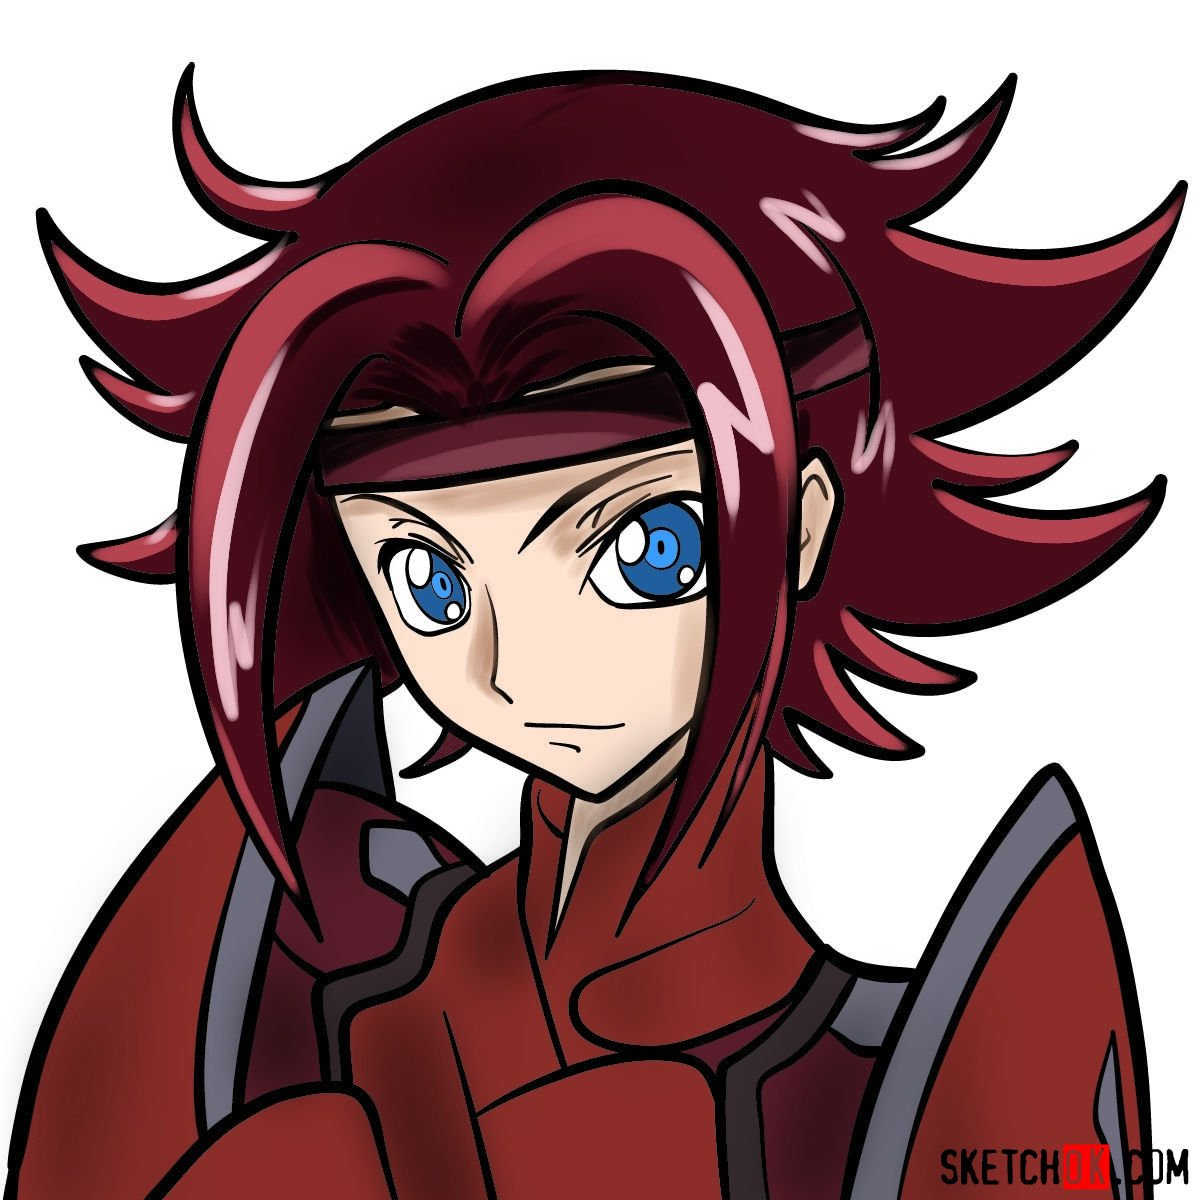 Making the drawing of Kallen Kozuki's face from Code Geass